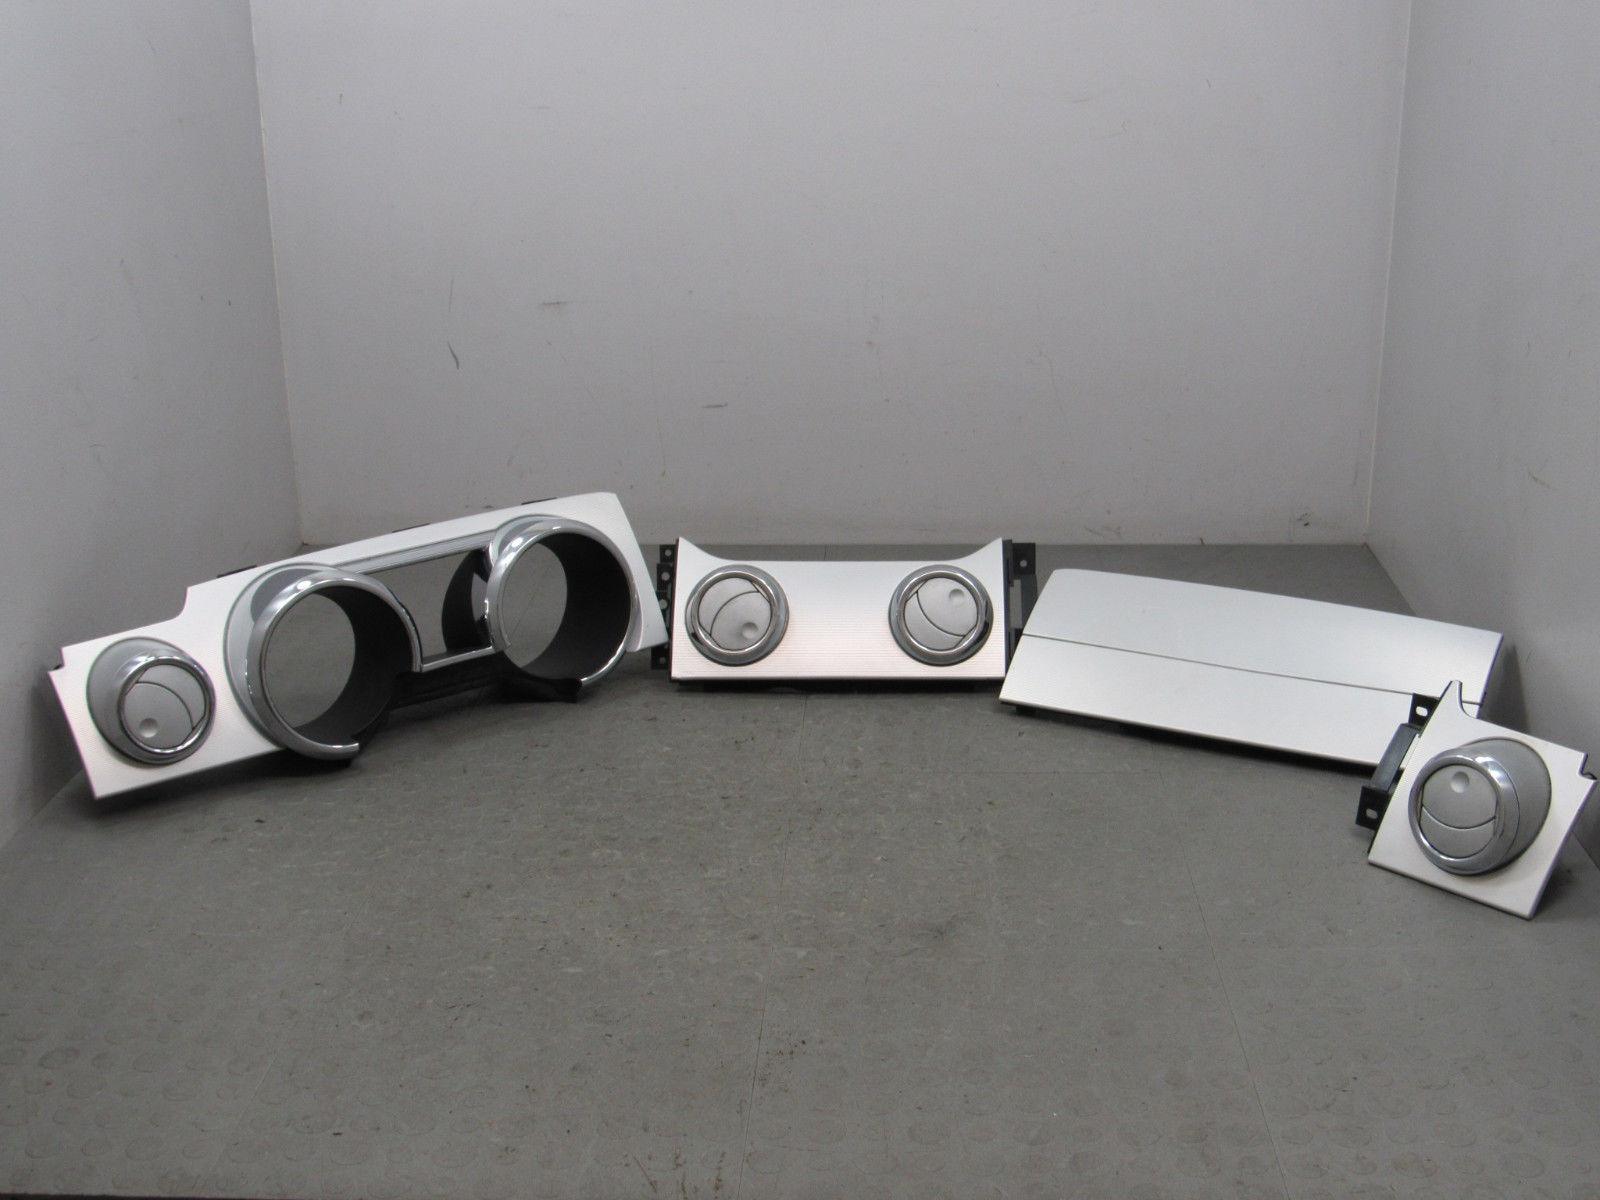 05 09 mustang gt premium silver cluster bezel dash vents airbag cover trim set m